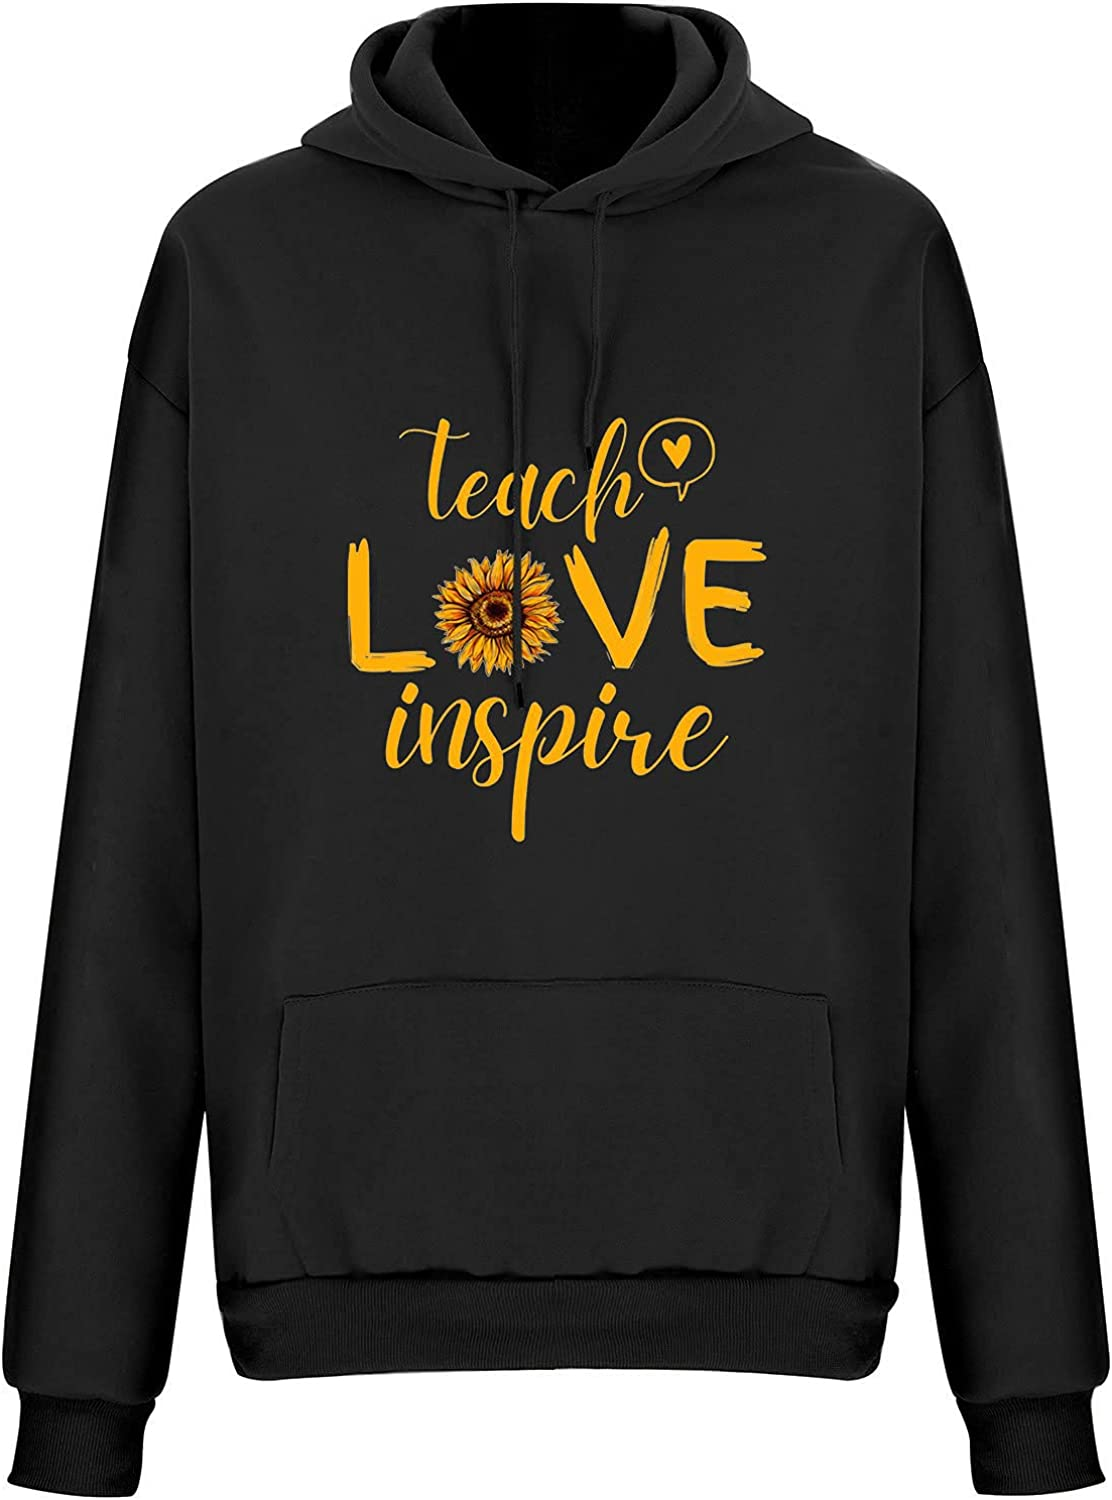 Hoodies for Women Plus Size Women's Sweatshirts Cute Printing Long Sleeve Pullover Tops Hooded Shirt for Autumn Winter